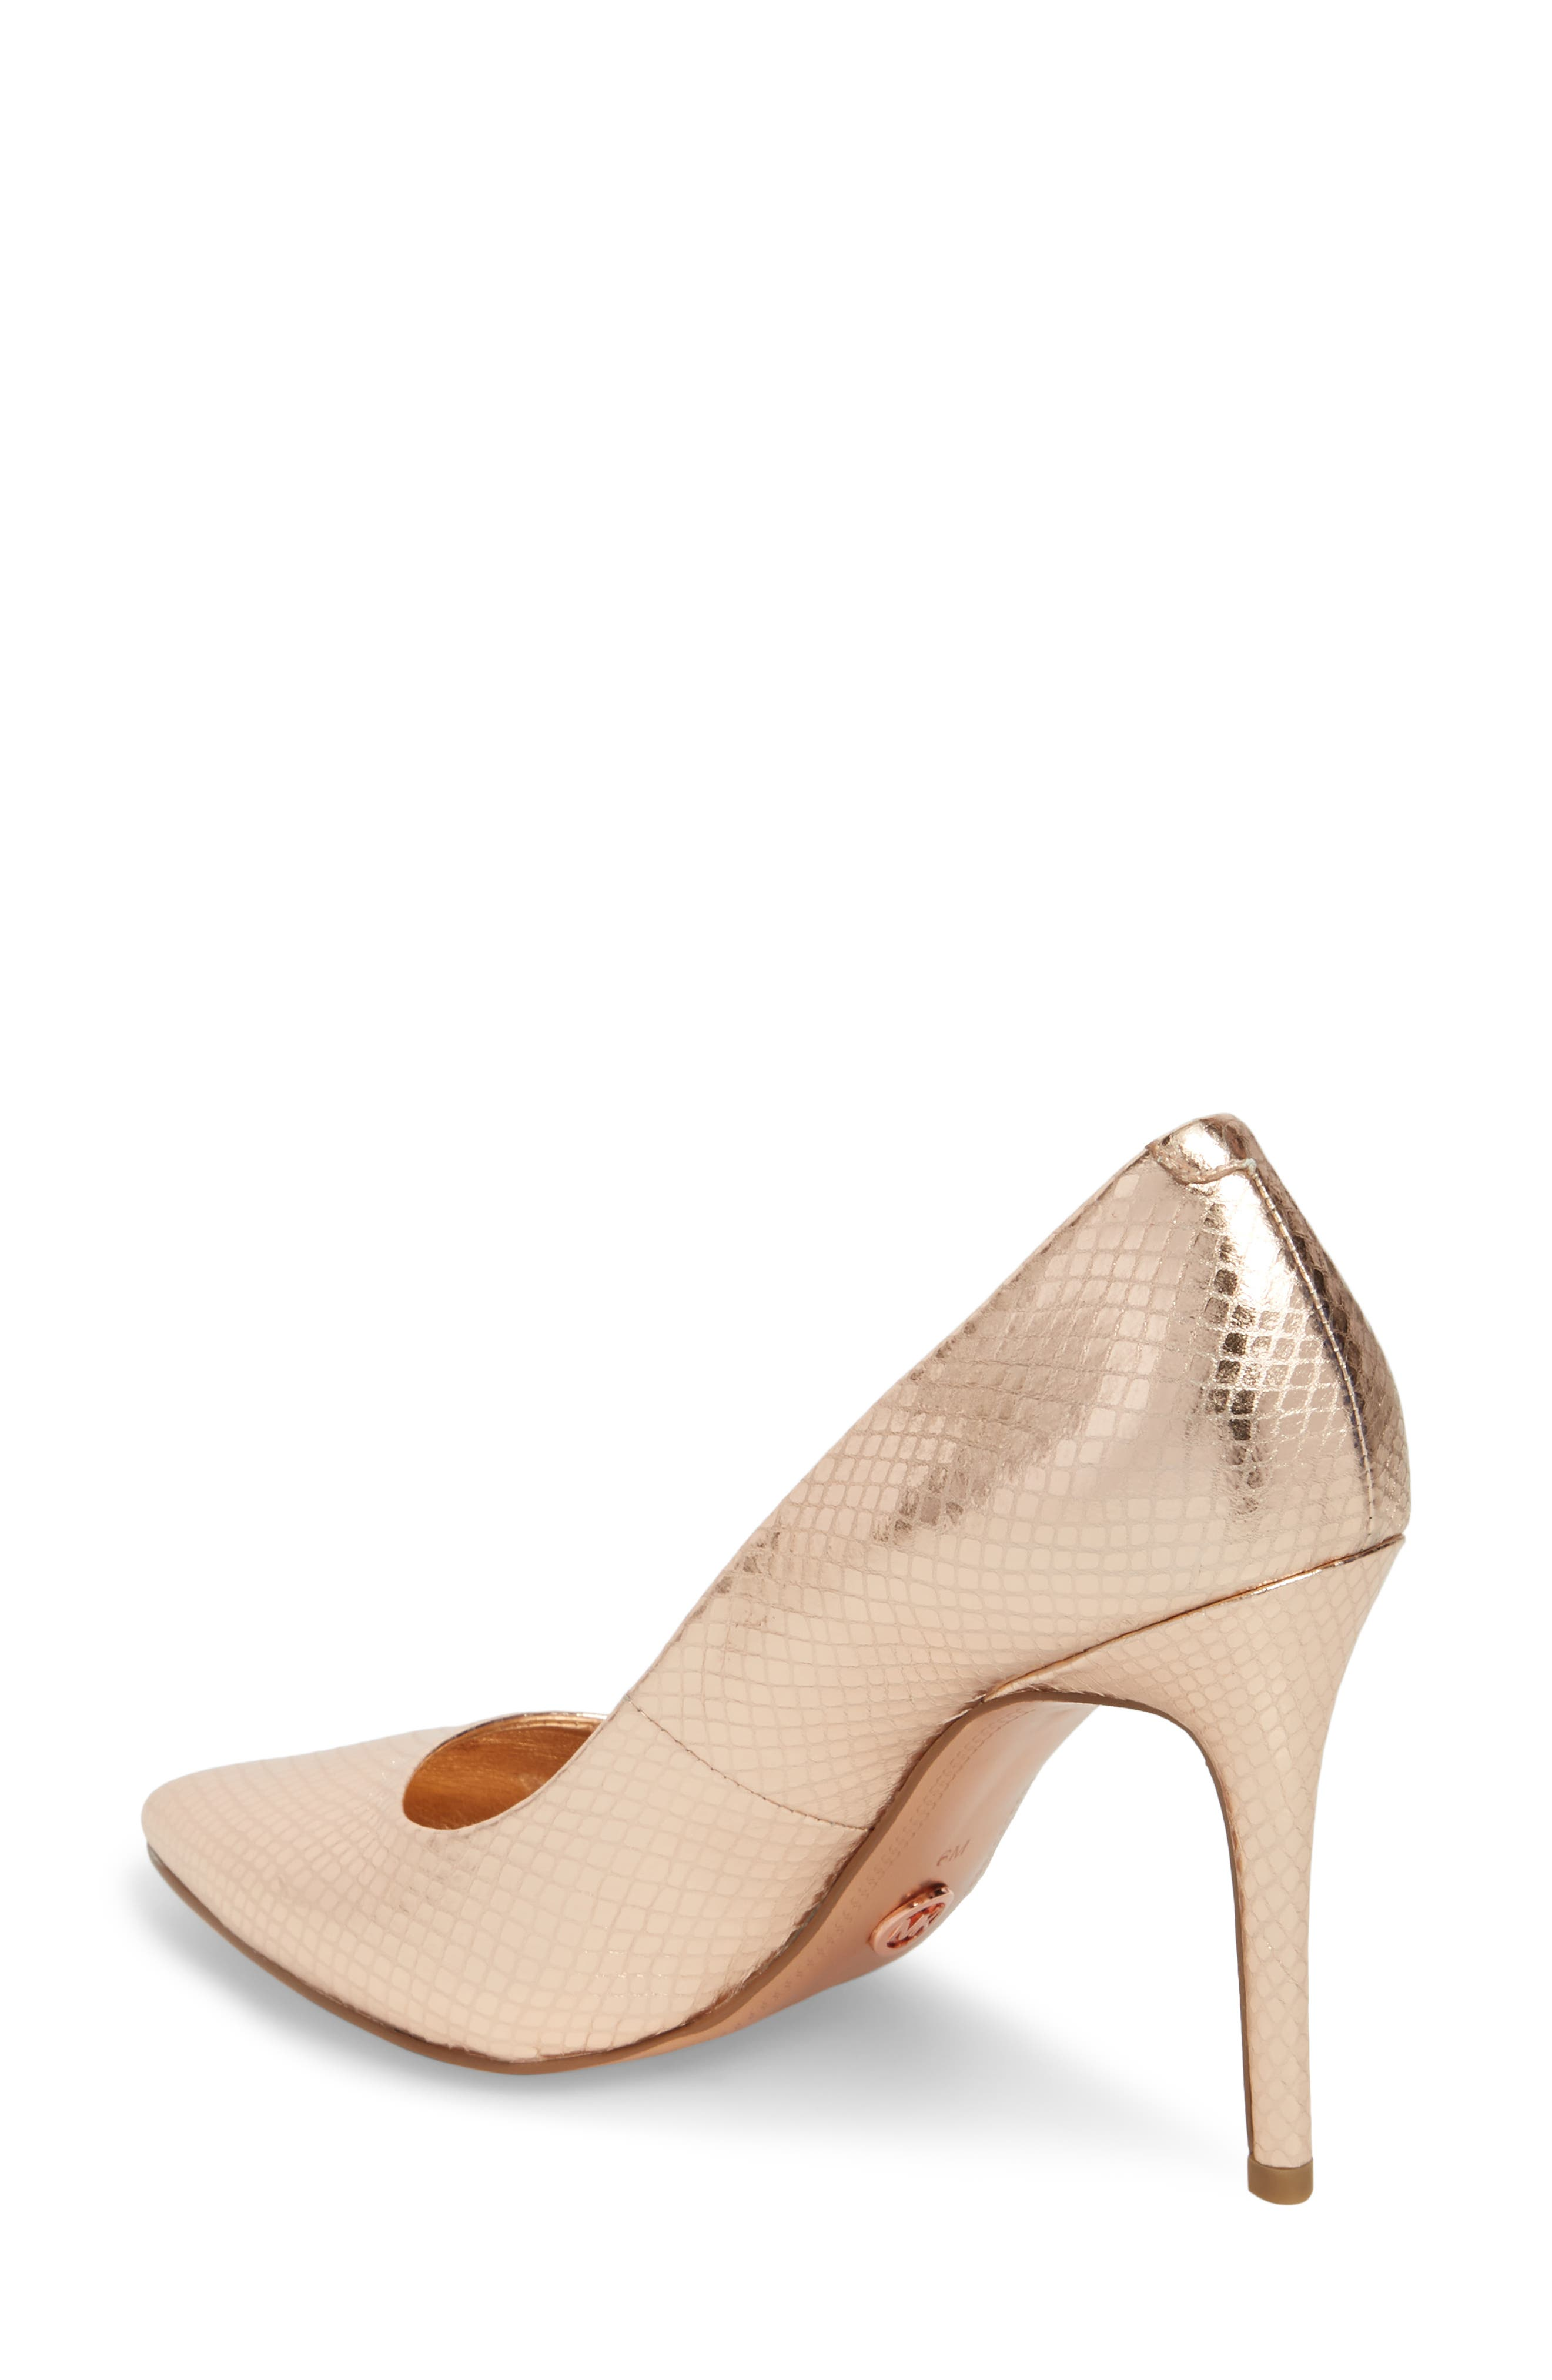 Claire Pointy Toe Pump,                             Alternate thumbnail 2, color,                             Soft Pink Snake Print Fabric